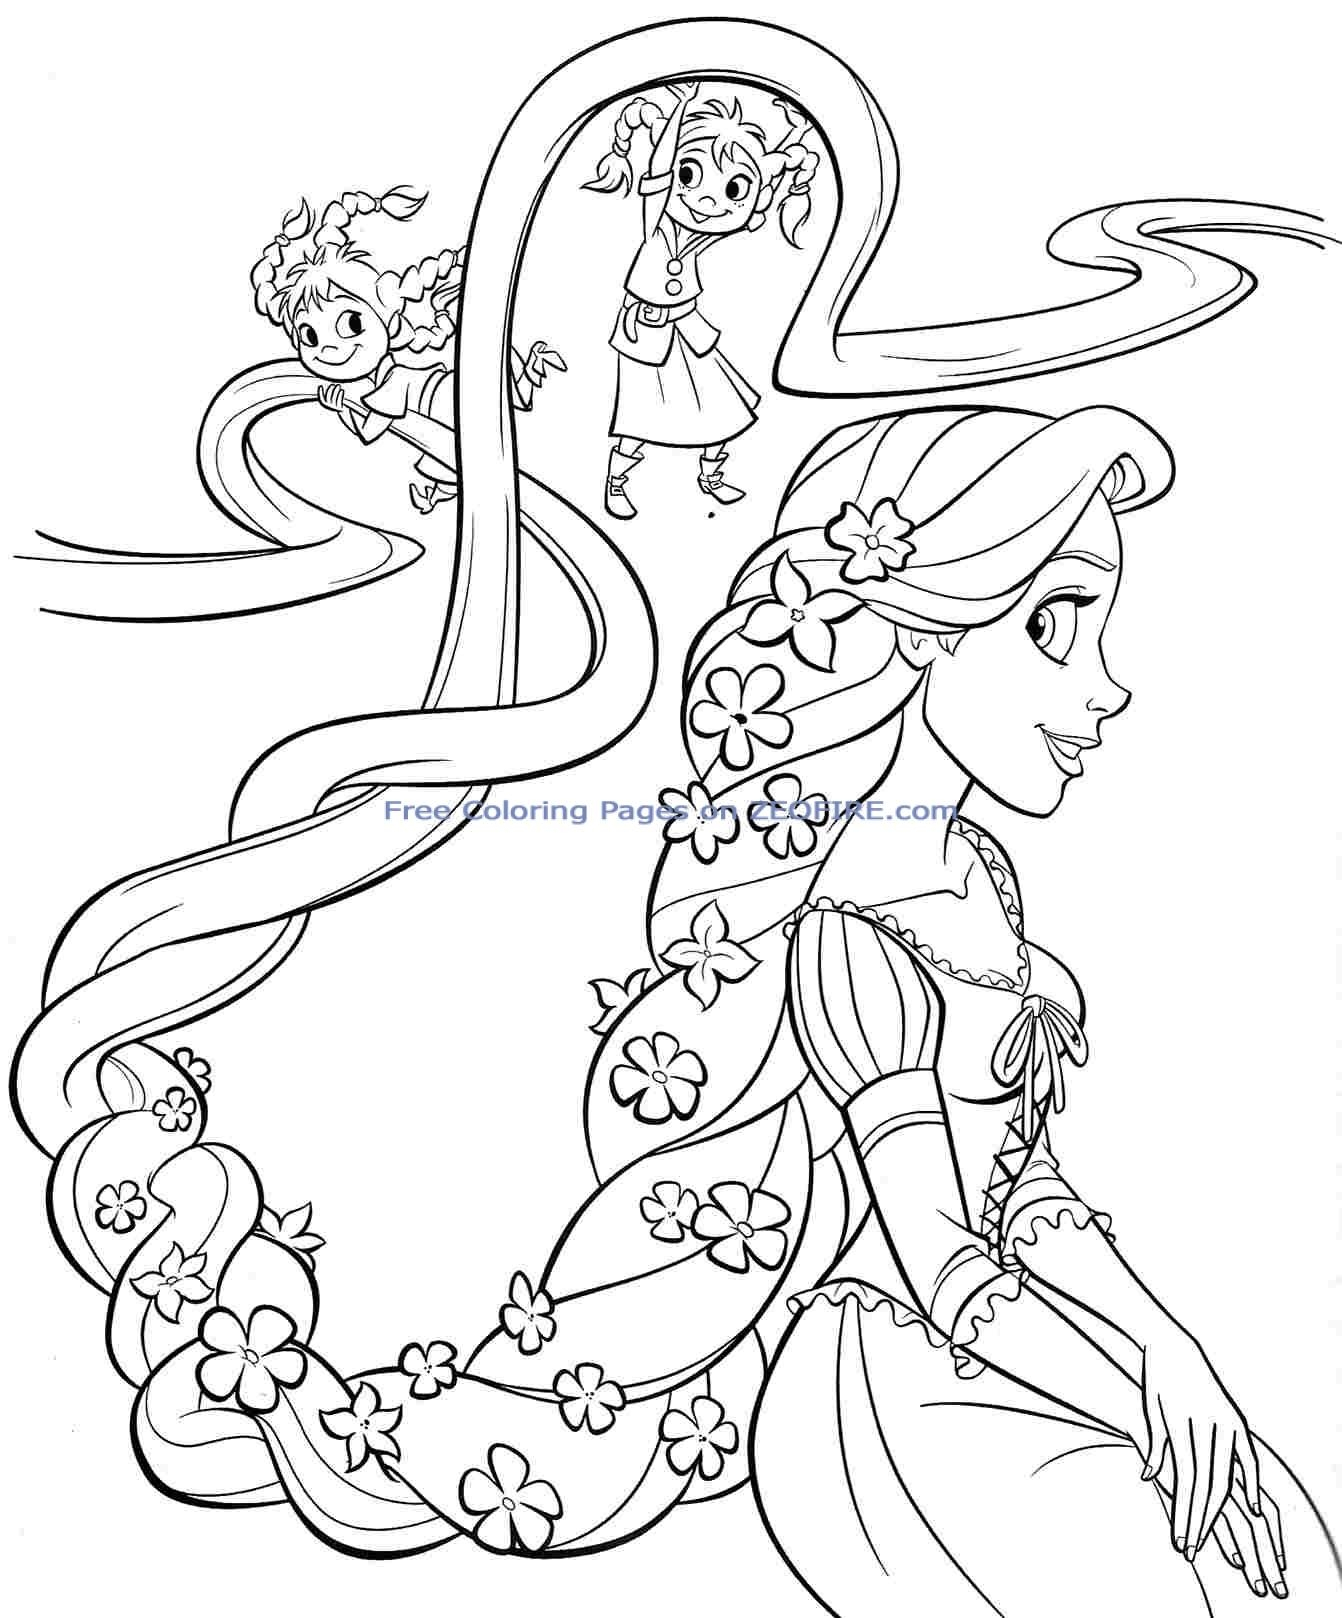 Coloring Book Pages Princess : Baby princess coloring pages to download and print for free